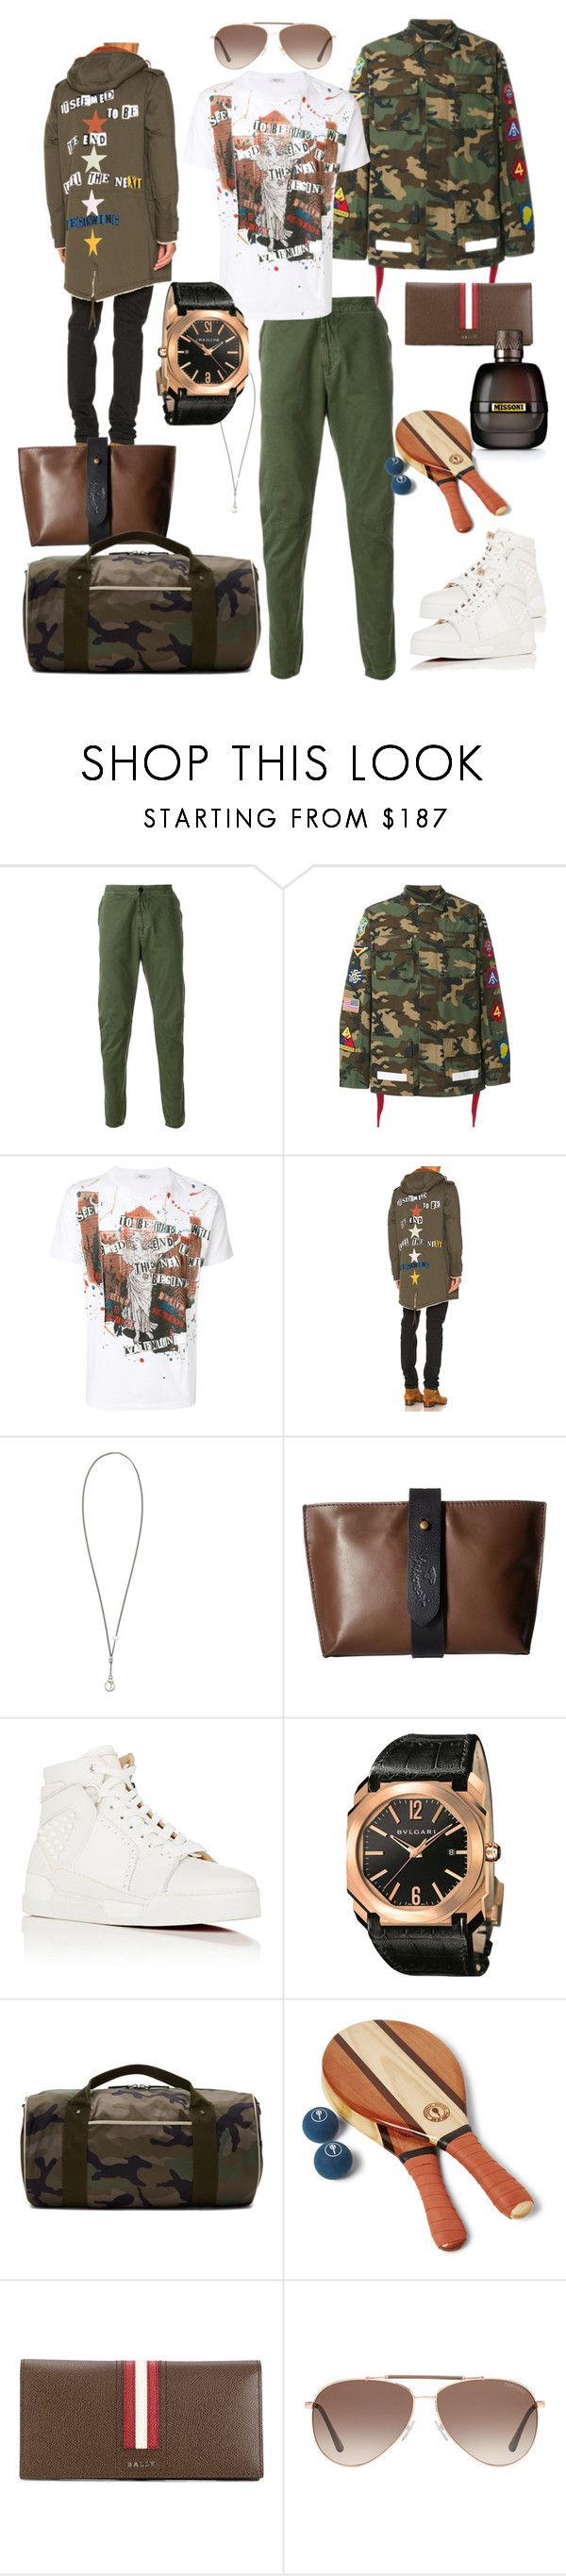 """""""Military motivation.."""" by bm-bojanamilanovic ❤ liked on Polyvore featuring STONE ISLAND, Off-White, Valentino, Ann Demeulemeester, Vivienne Westwood, Christian Louboutin, Bulgari, Frescobol Carioca, Bally and Tom Ford"""